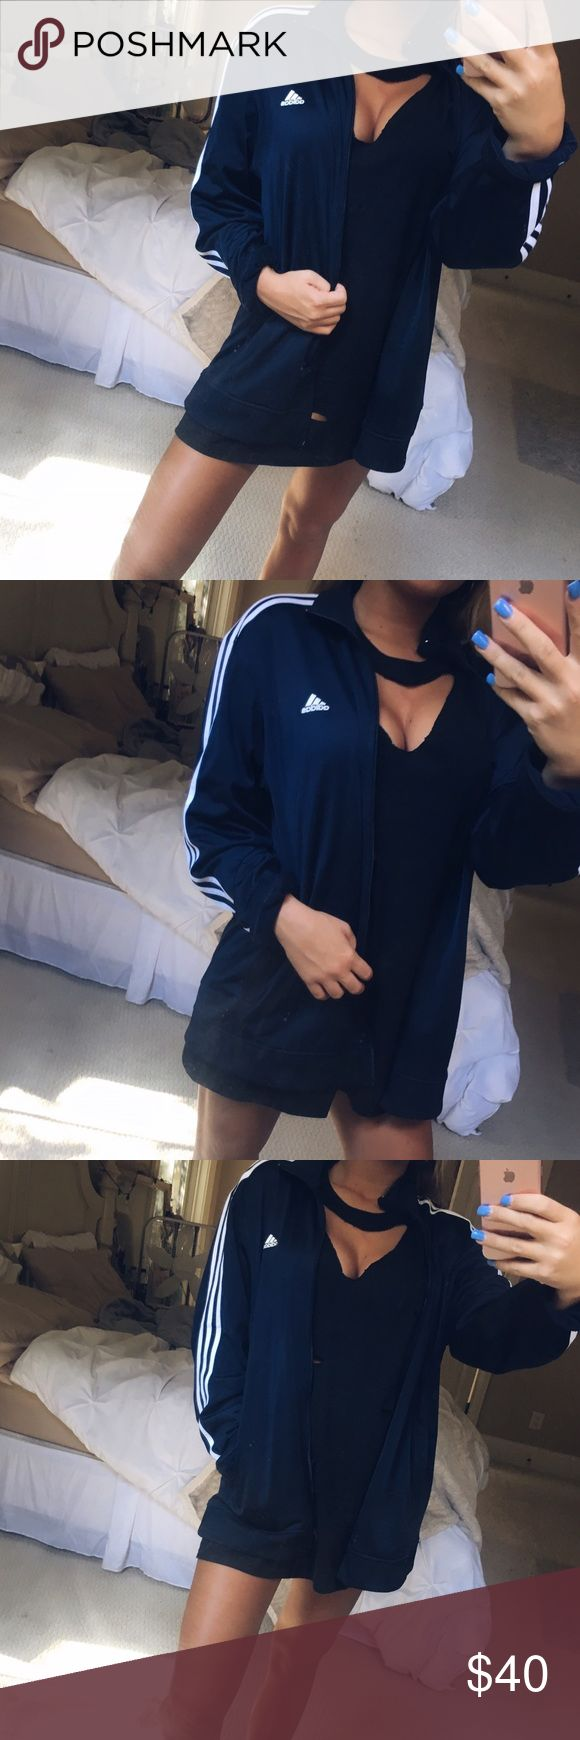 navy adidas zip up super cute and classic navy blue and white adidas zip up. a staple piece for any closet! super versatile and stylish • this looks amazing dressed up or down! this trendy babe can be yours ;;;) size large, in perfect condition 🍃 adidas Jackets & Coats